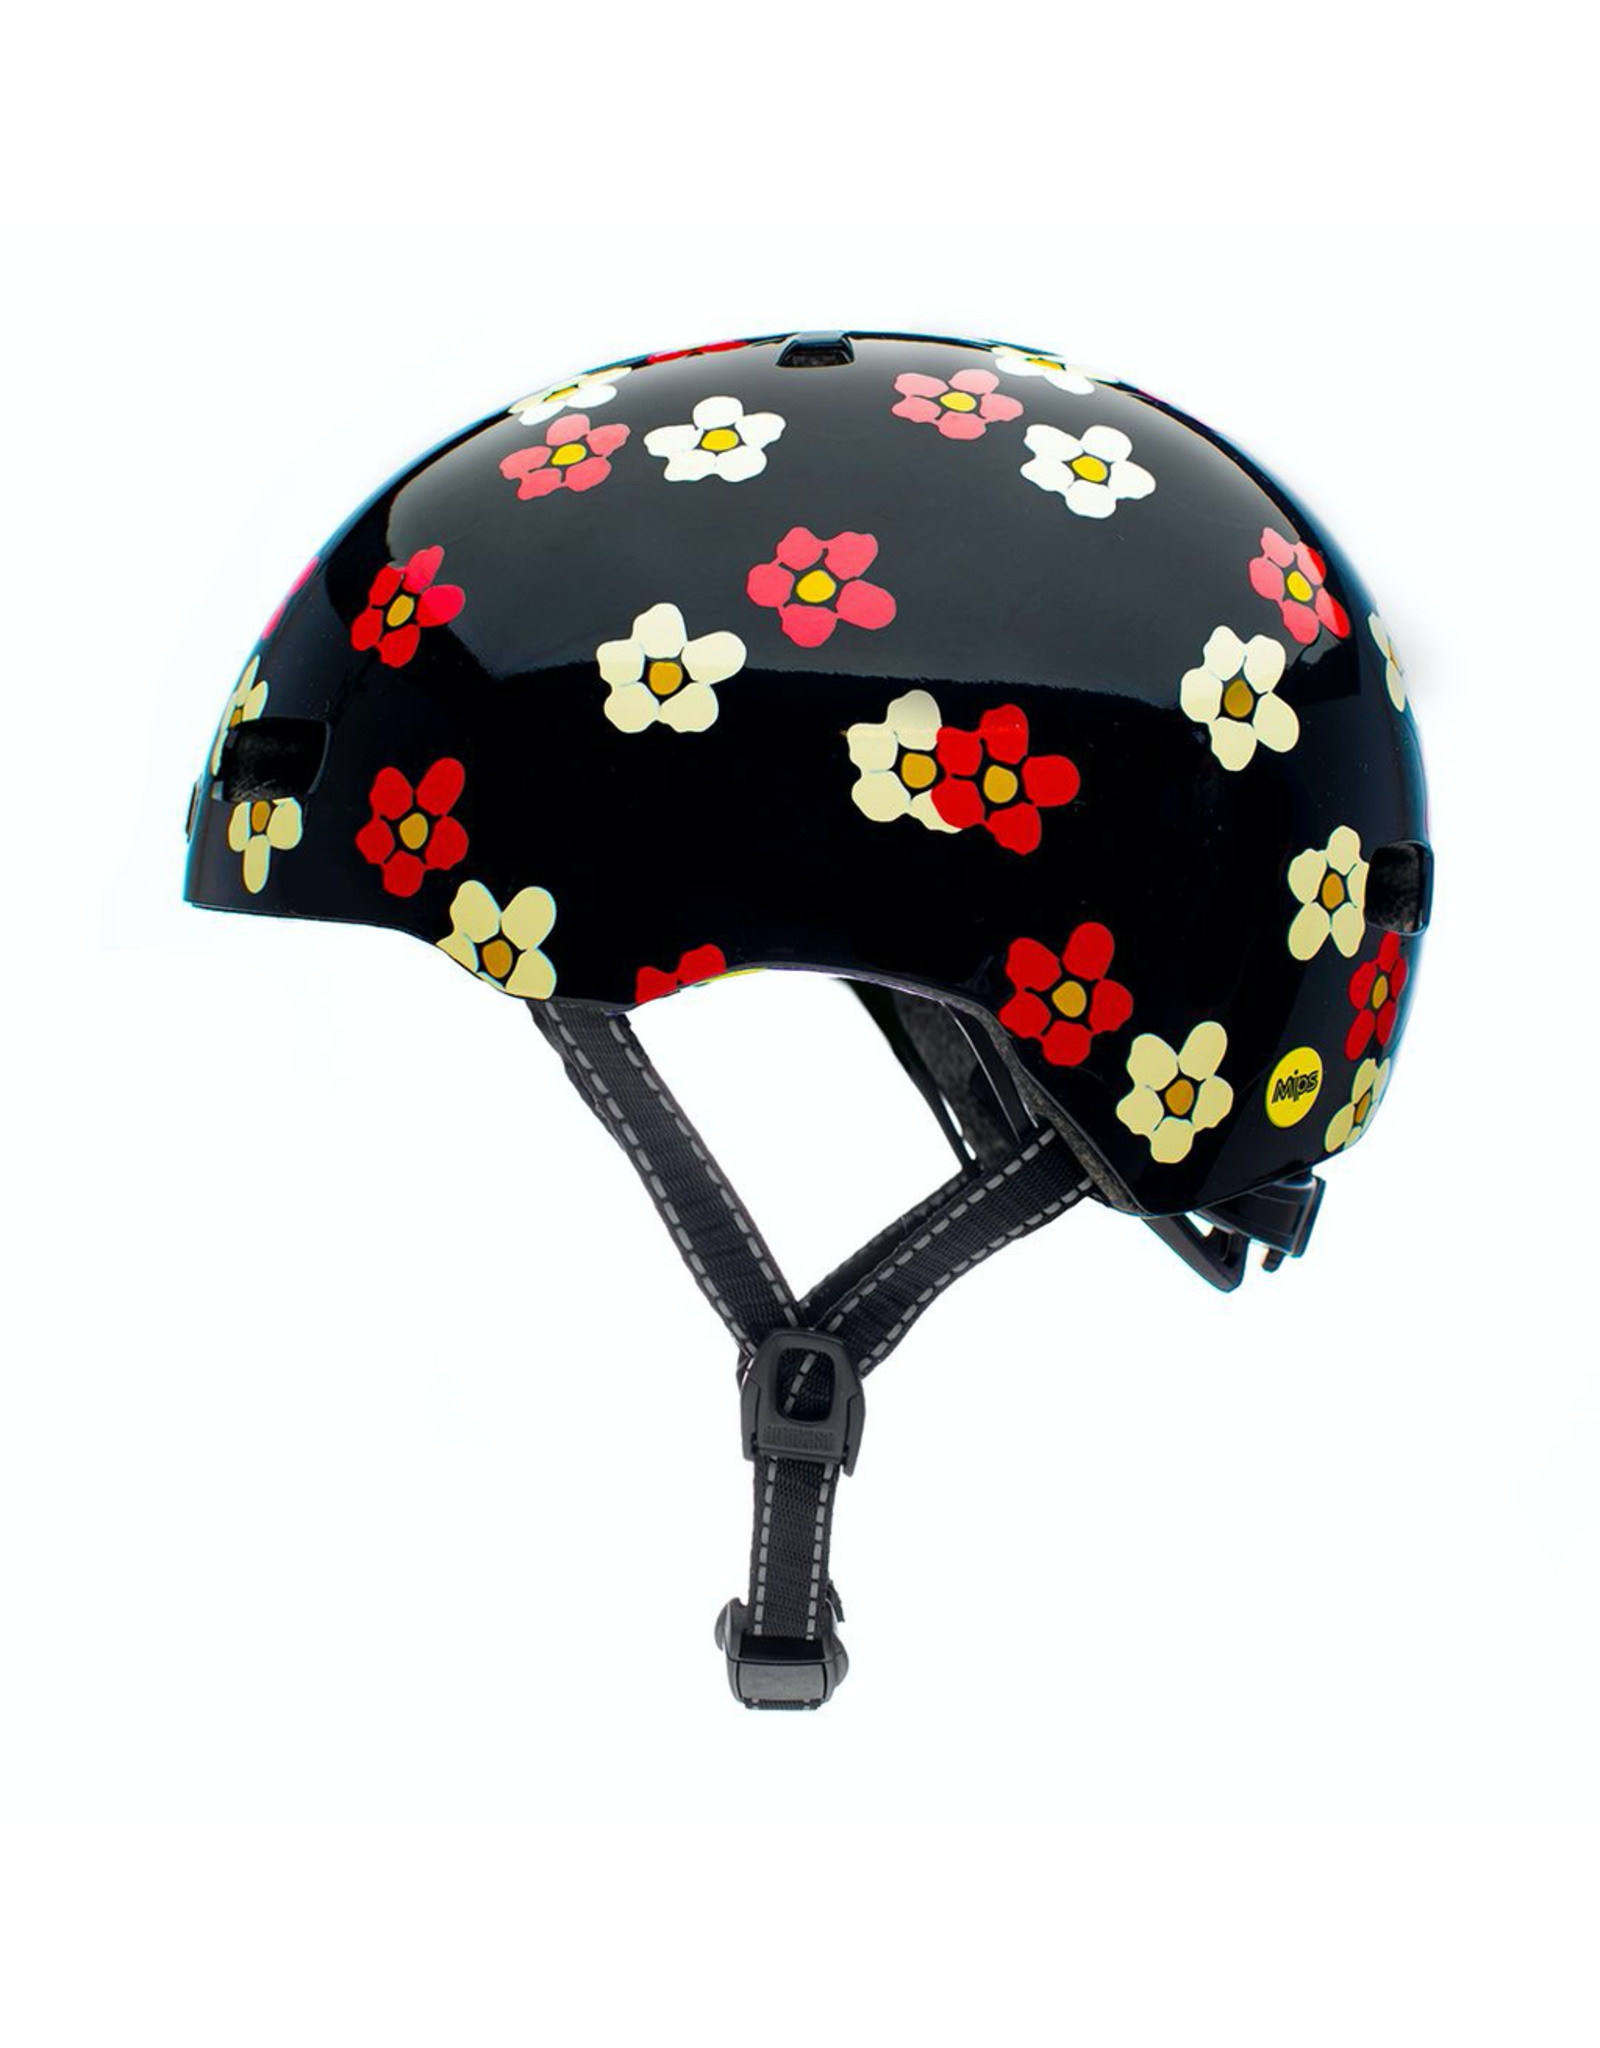 Nutcase STREET FUN FLOR-ALL GLOSS MIPS HELMET S